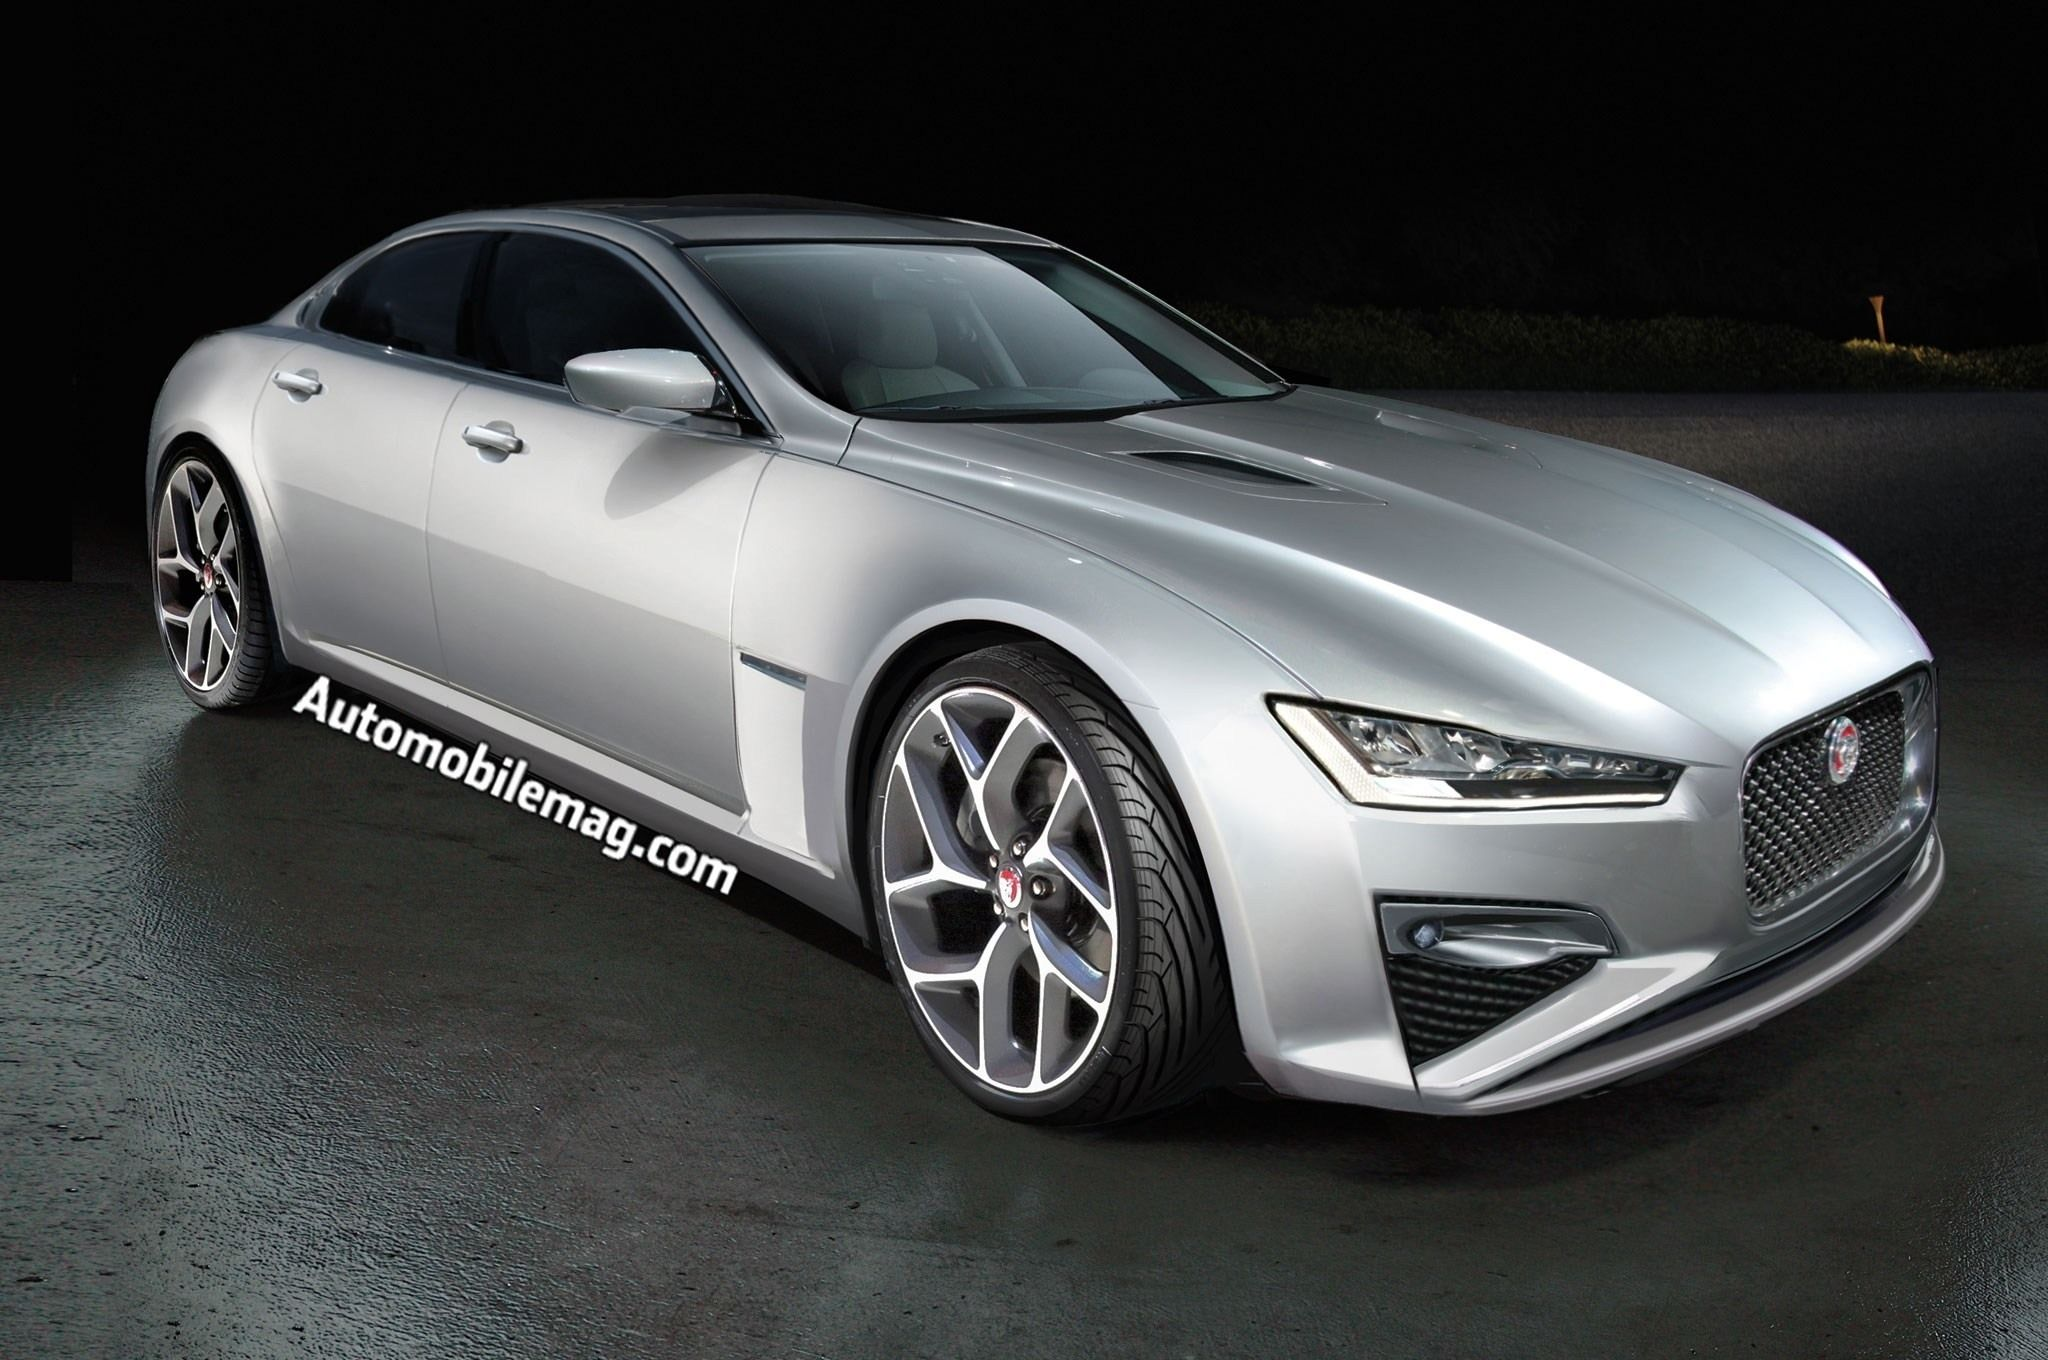 2019 Jaguar Xf Supercharged Interior Exterior And Review